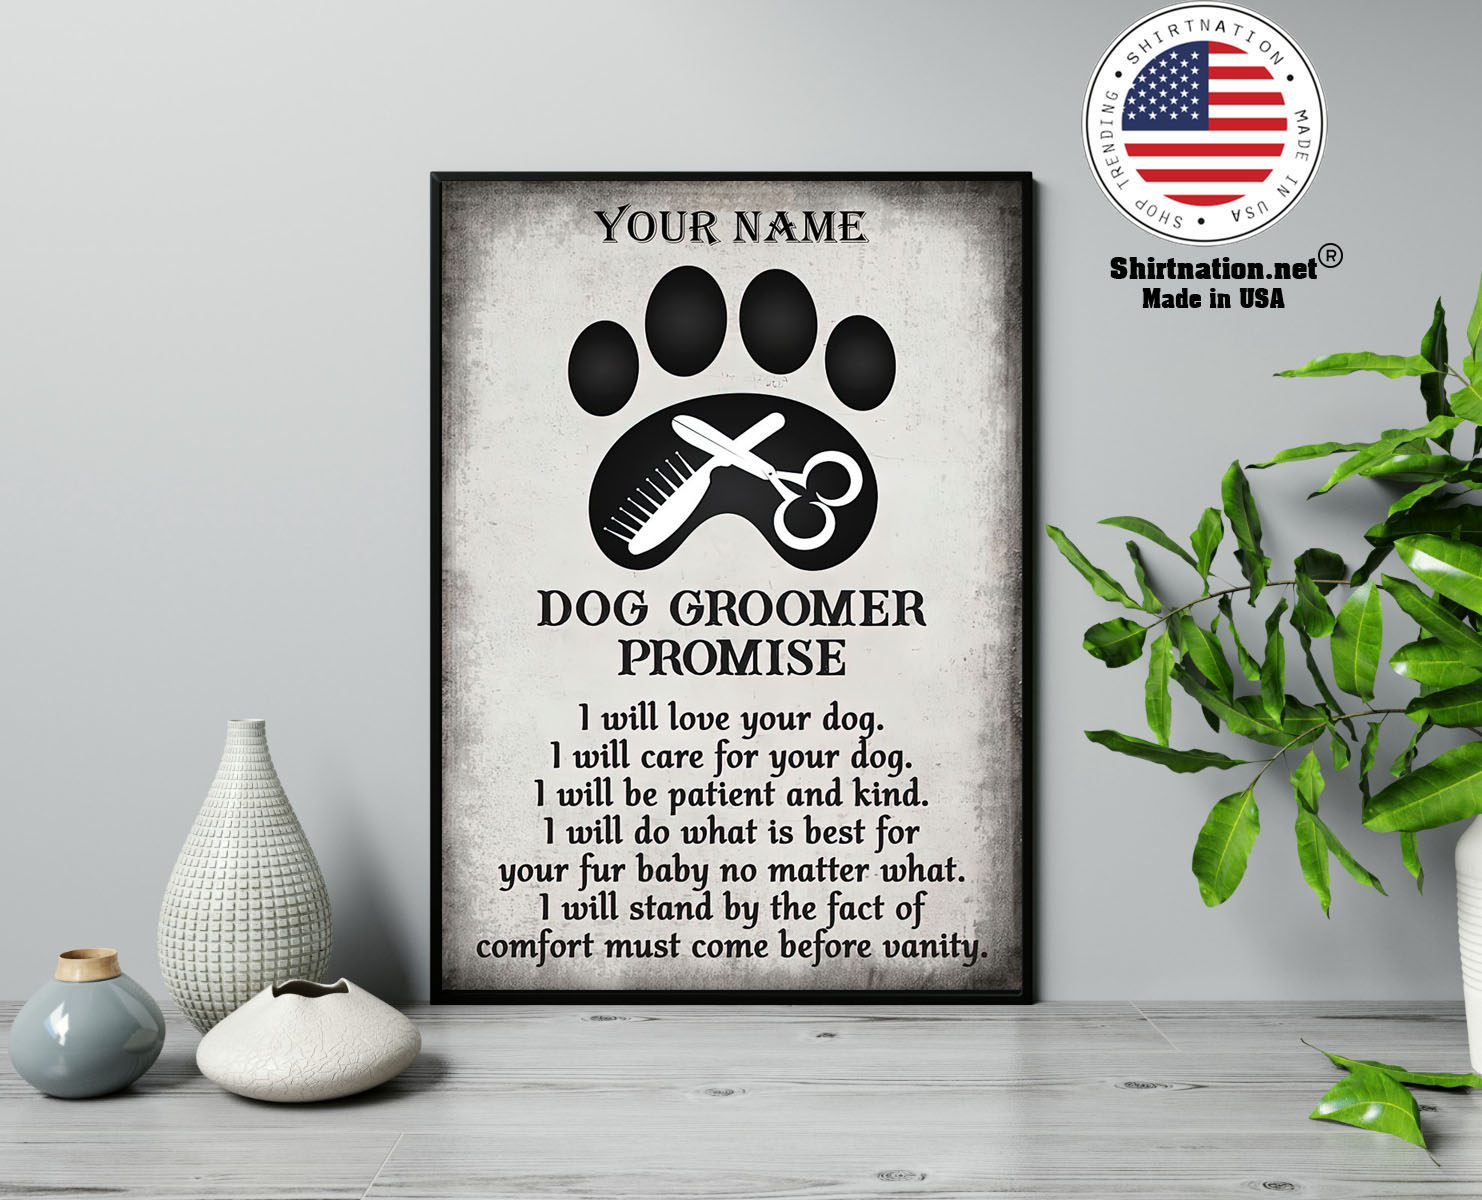 Dog groomer promise I will love your dog I will care for your dog custom name poster 13